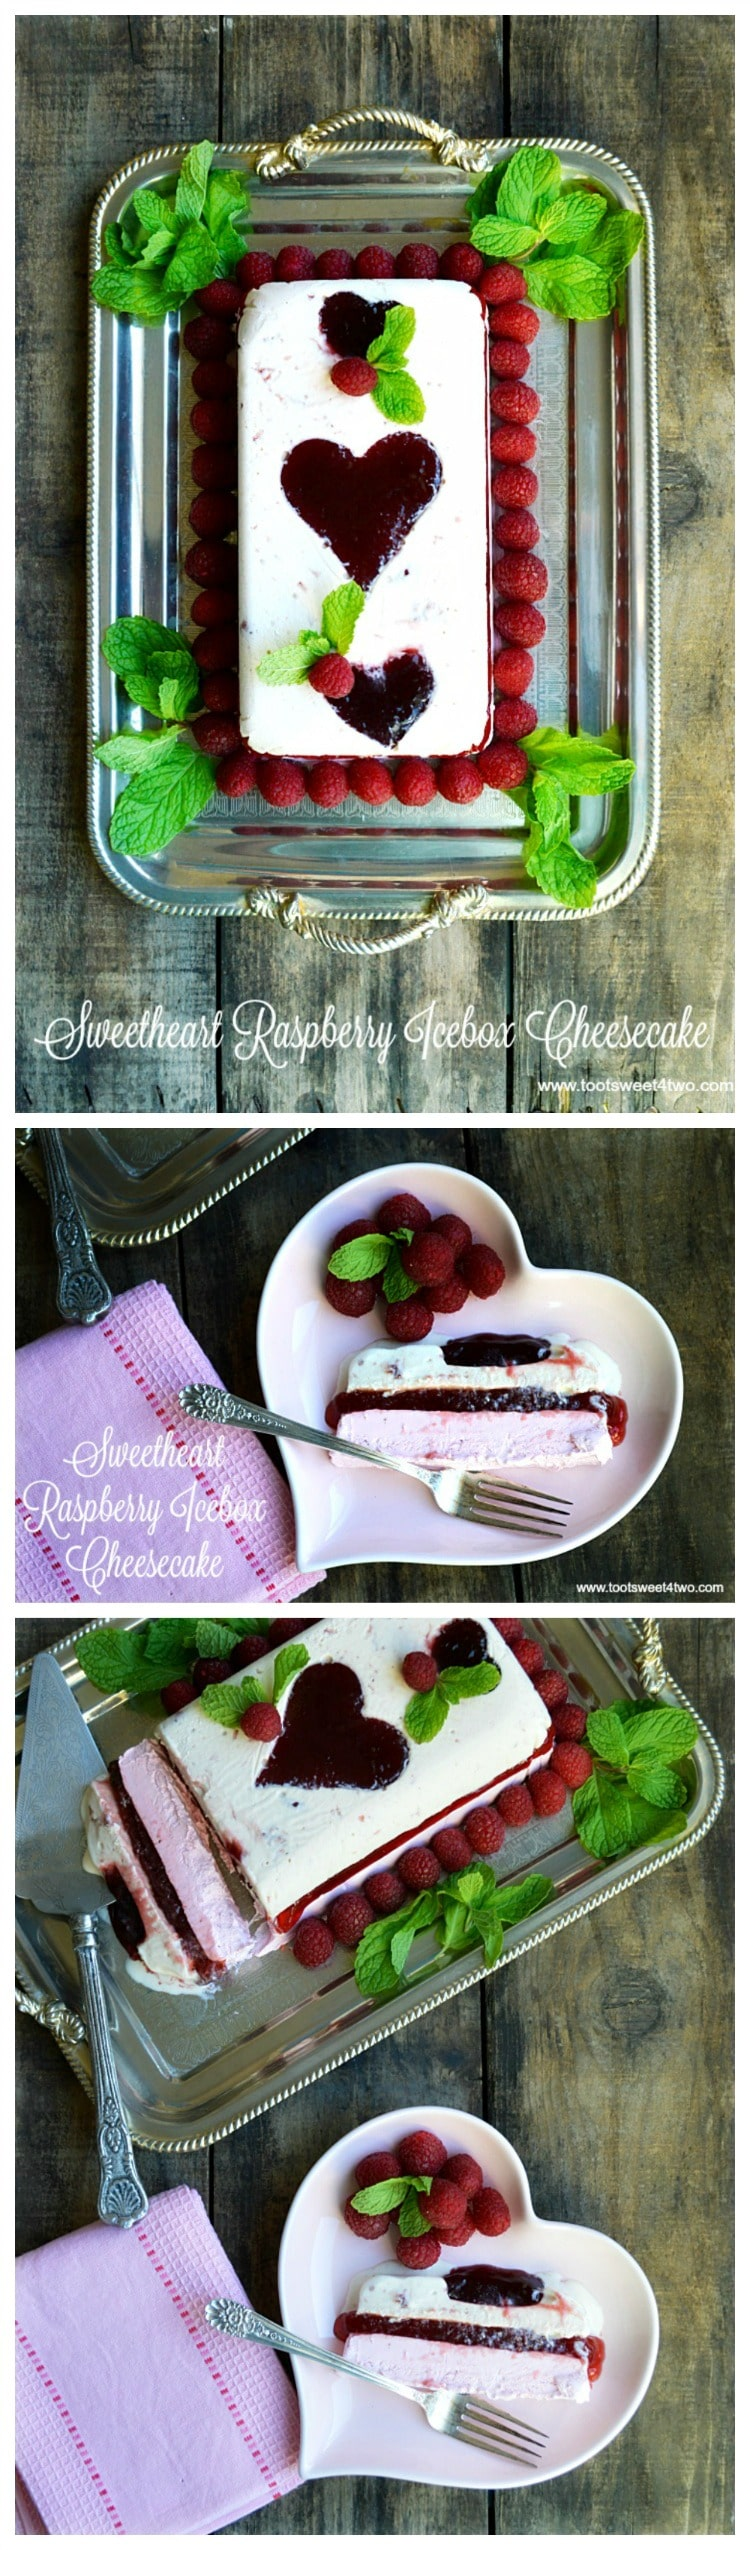 "Looking for unique cheesecake recipes? Look no further! Sweetheart Raspberry Icebox Cheesecake is an easy, frozen, no bake dessert that combines an easy-to-make cheesecake layer with a layer of raspberry flavored ice cream and molded raspberry jam hearts. Frozen for hours or overnight, unmold this luscious concoction onto a pretty platter and then top with fresh raspberries and sprigs of mint. A spectacular-looking dessert, this delicious recipe with ""wow"" friends and family. 